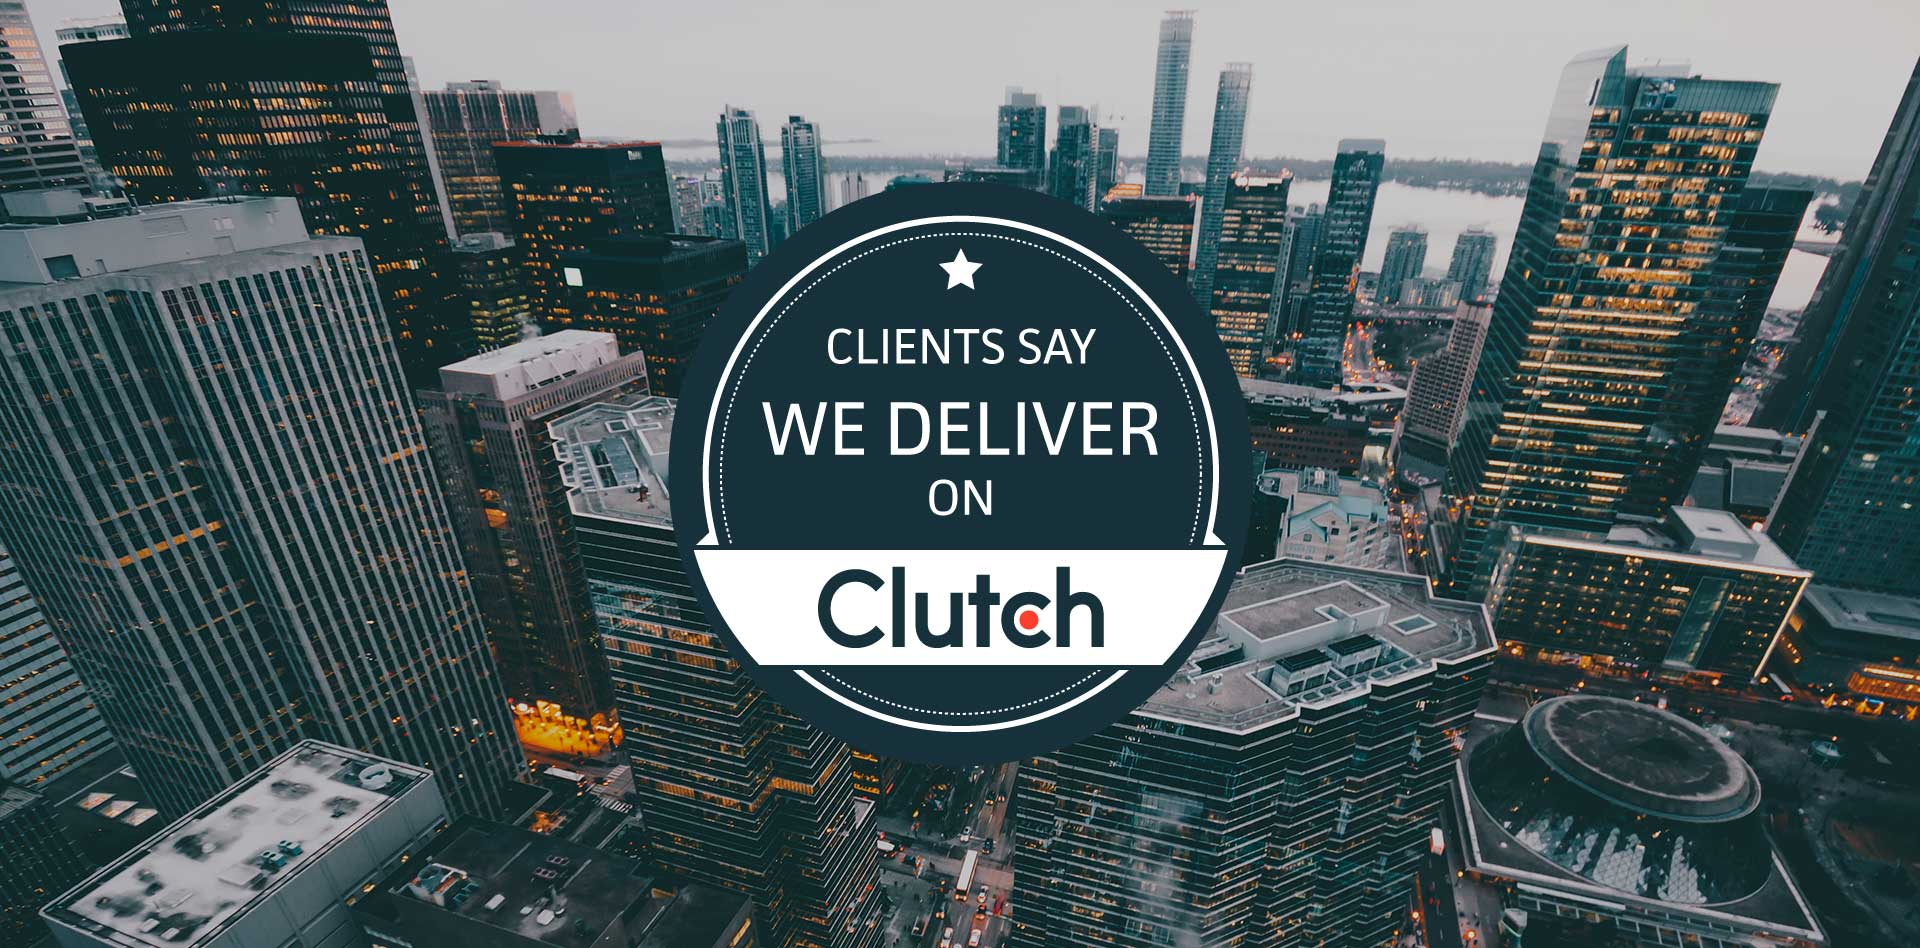 tall building background with clutch logo